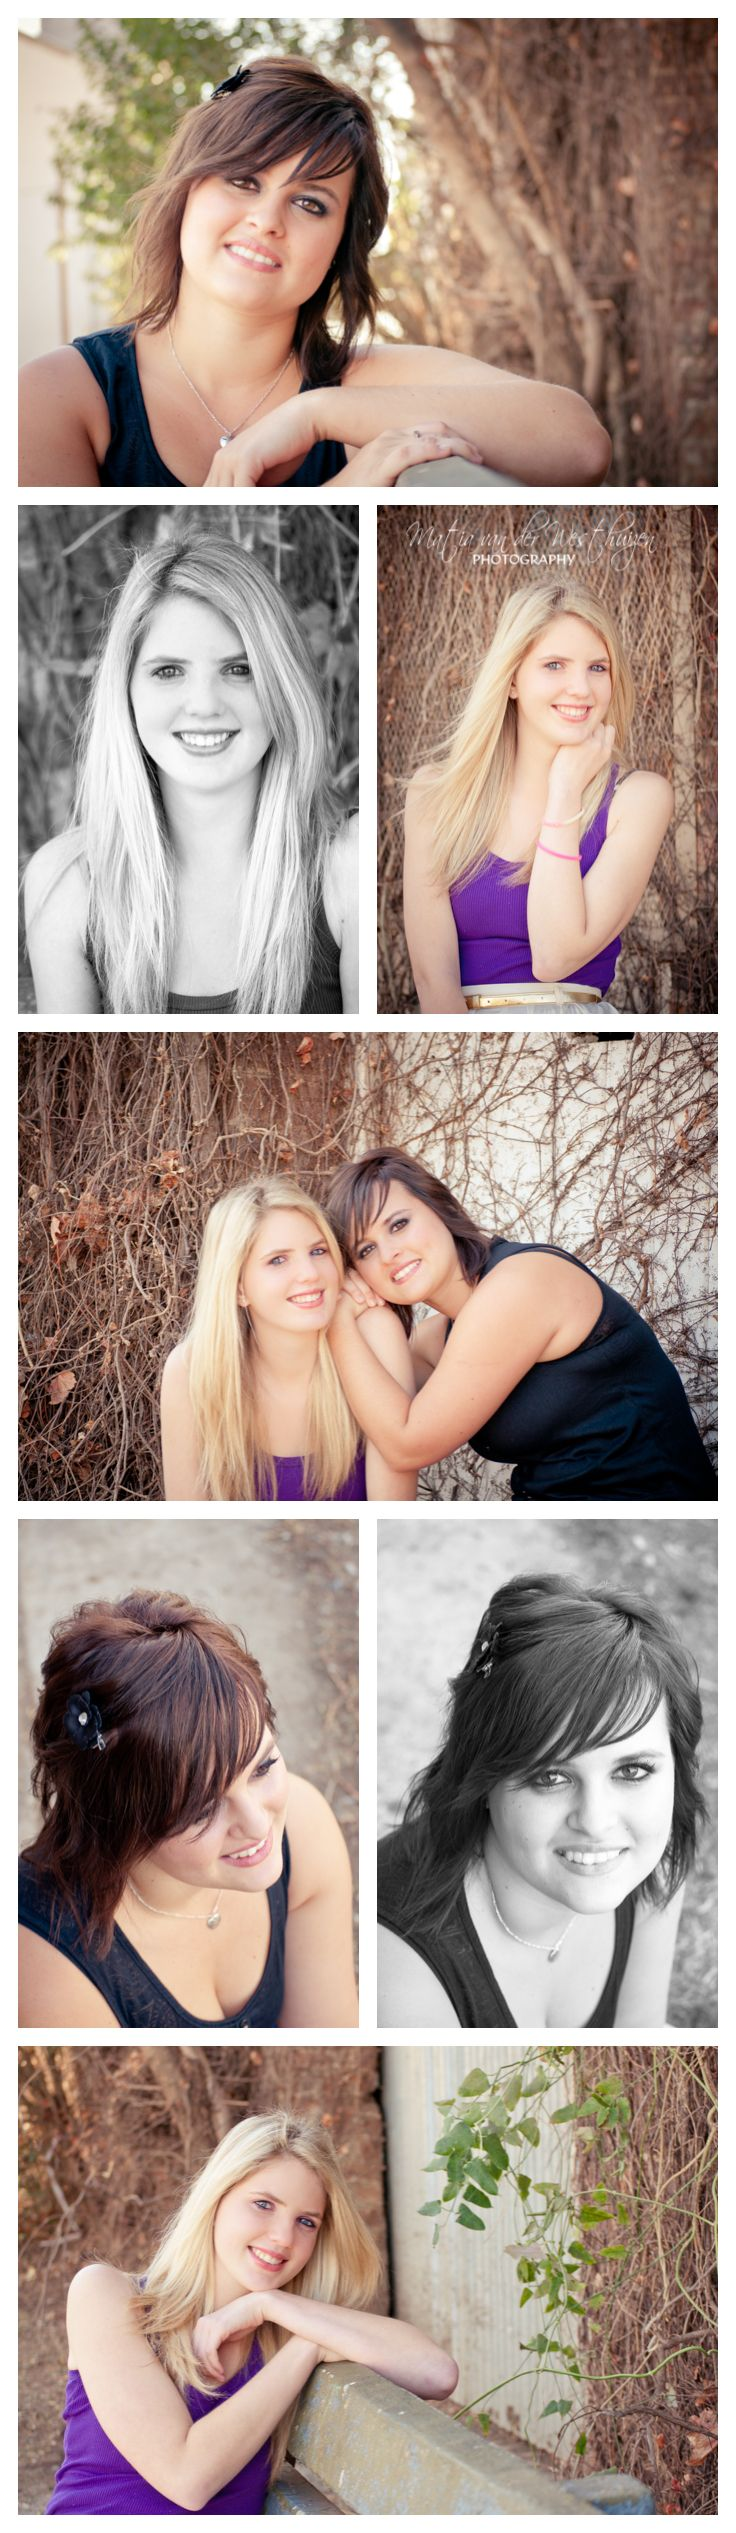 Something of my own - my love and my passion. Matia van der Westhuizen Photography